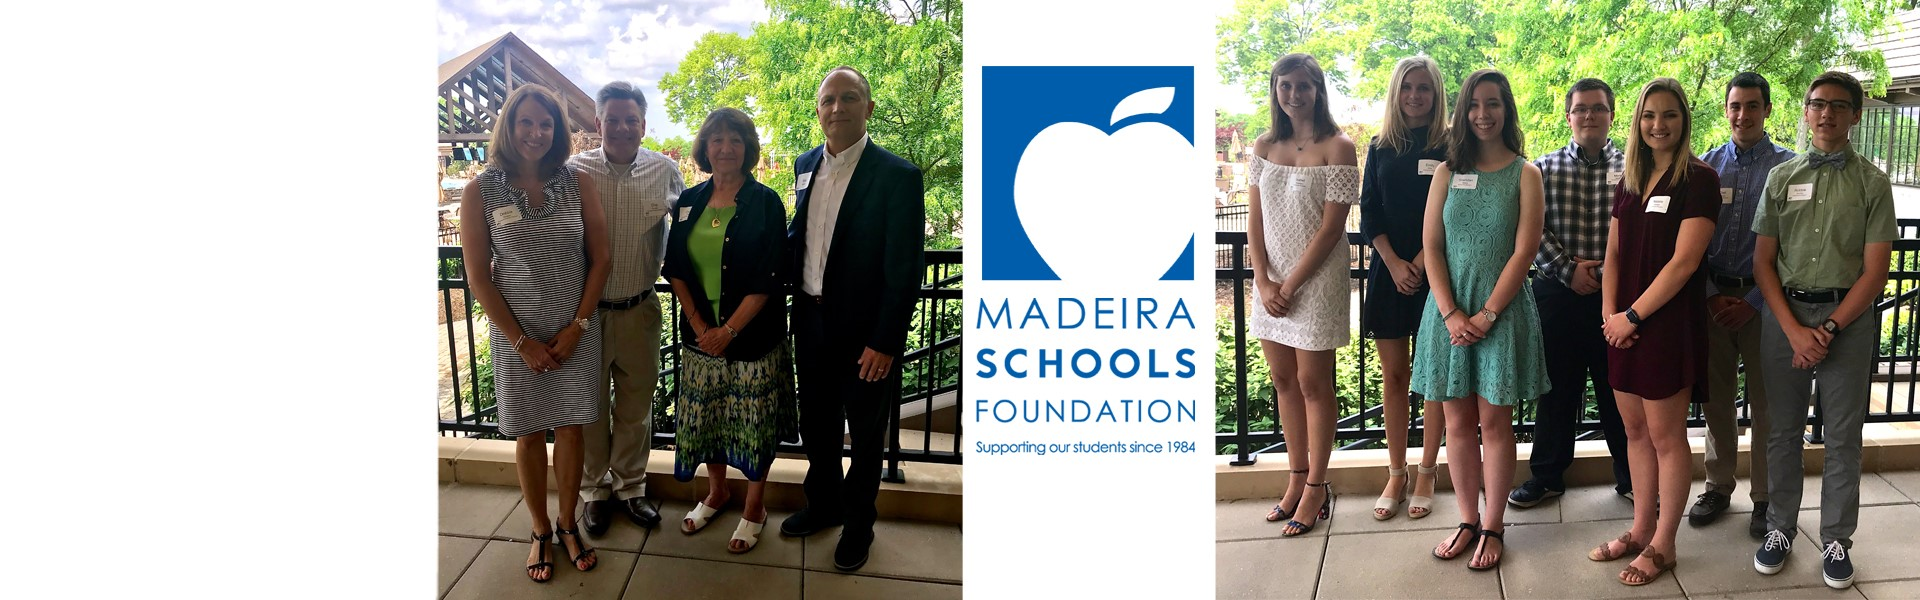 Presenting the Madeira Schools Foundation Distinguished Award and Scholarship Recipients READ MORE BELOW...